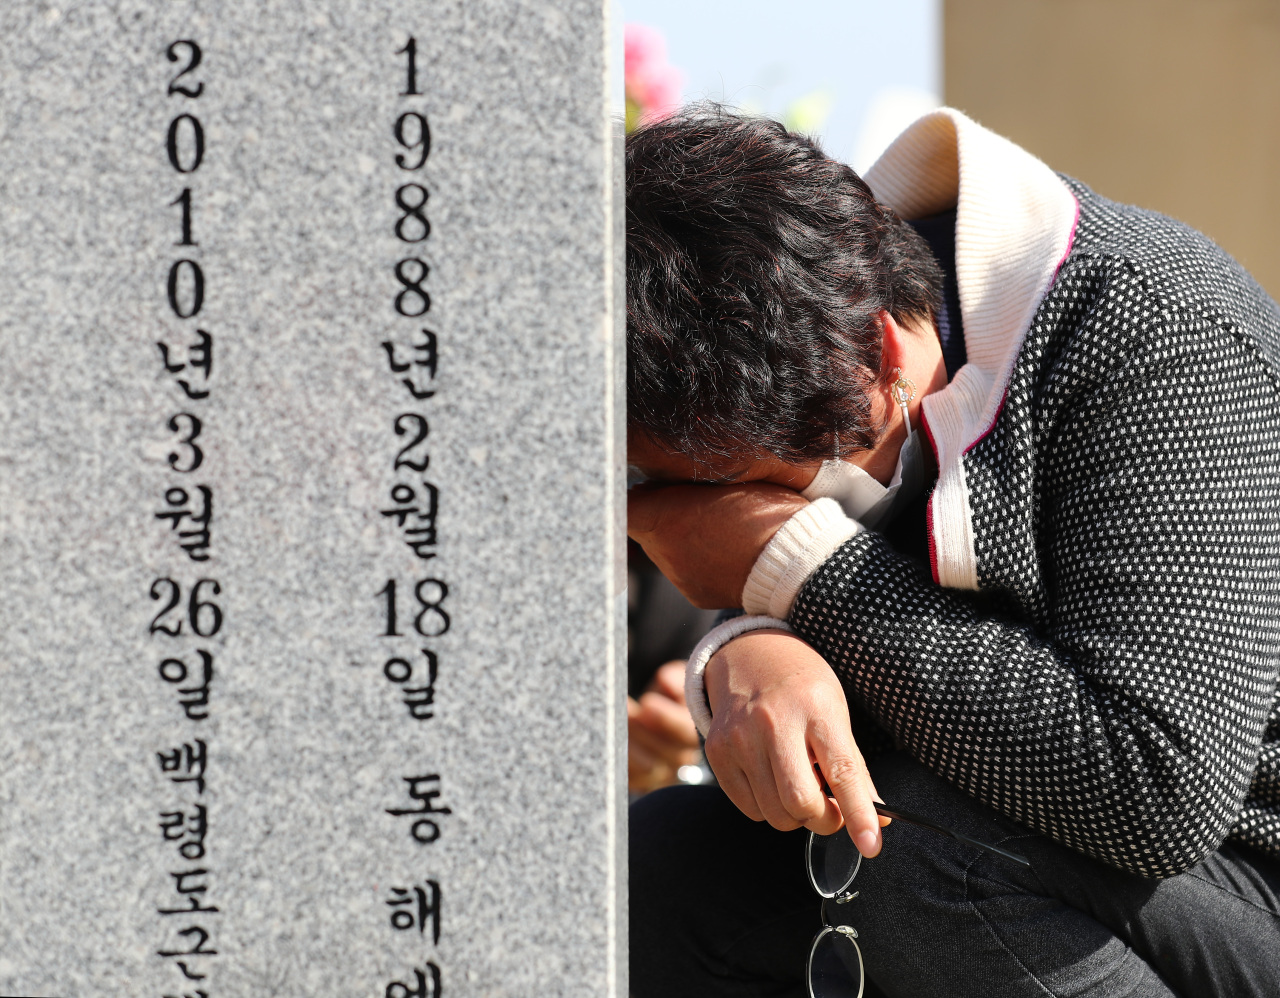 A bereaved family member of one of the 46 South Korean sailors killed in the torpedoing of the warship Cheonan by an infiltrating North Korean submarine within South Korean territorial waters in the West Sea on March 26, 2010, sheds tears in front of a grave at the National Cemetery in Daejeon, 164 kilometers south of Seoul, on March 25, 2021, one day ahead of the incident's anniversary. (Yonhap)